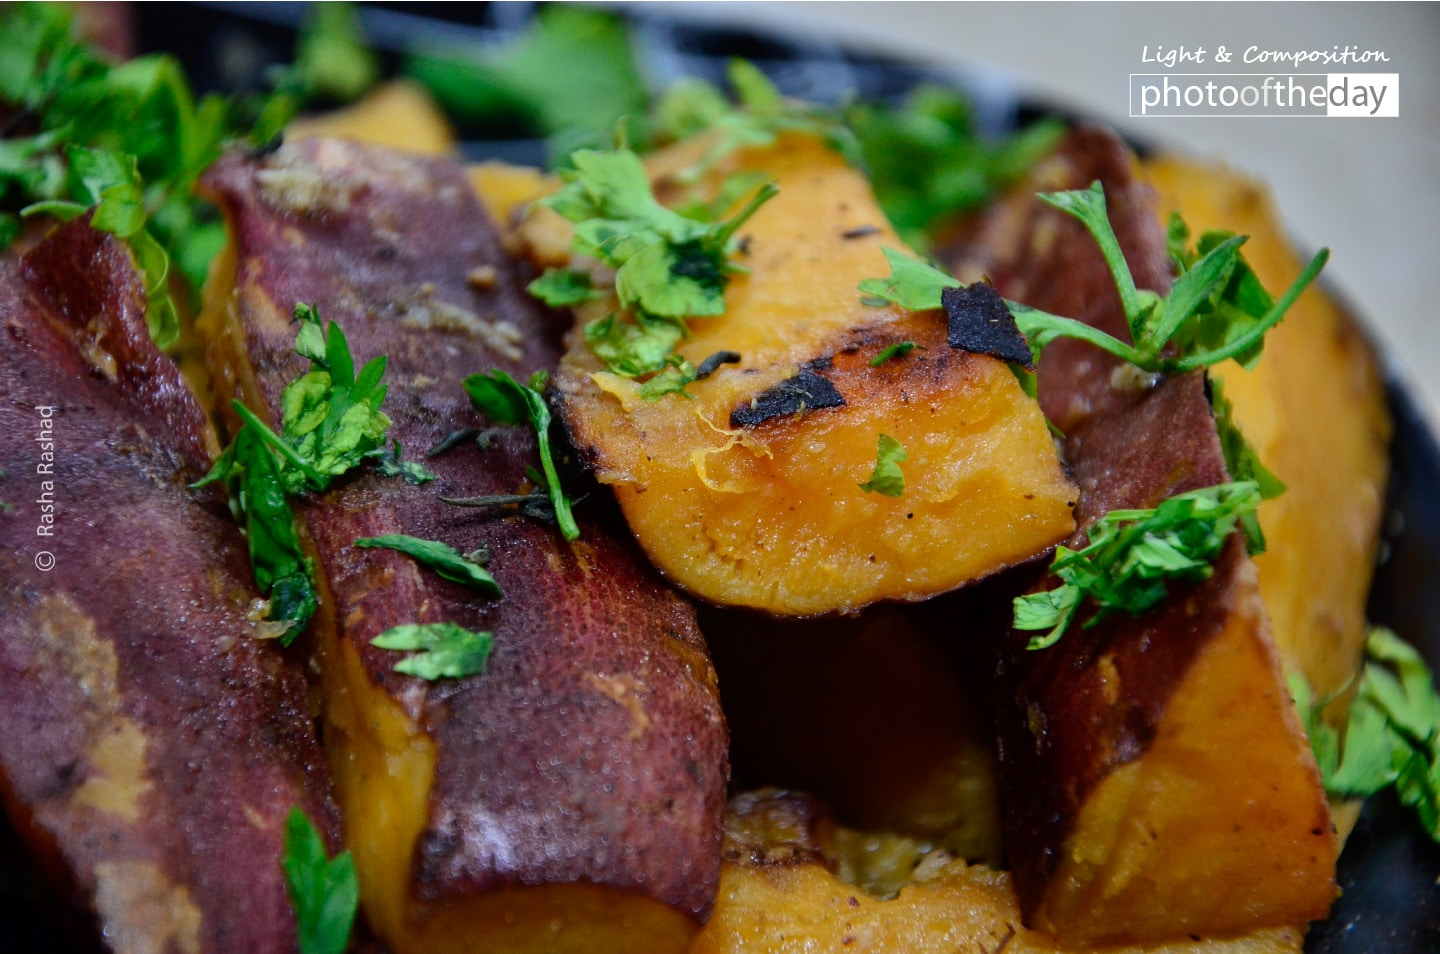 Sweet Potatoes with Parsley, by Rasha Rashad